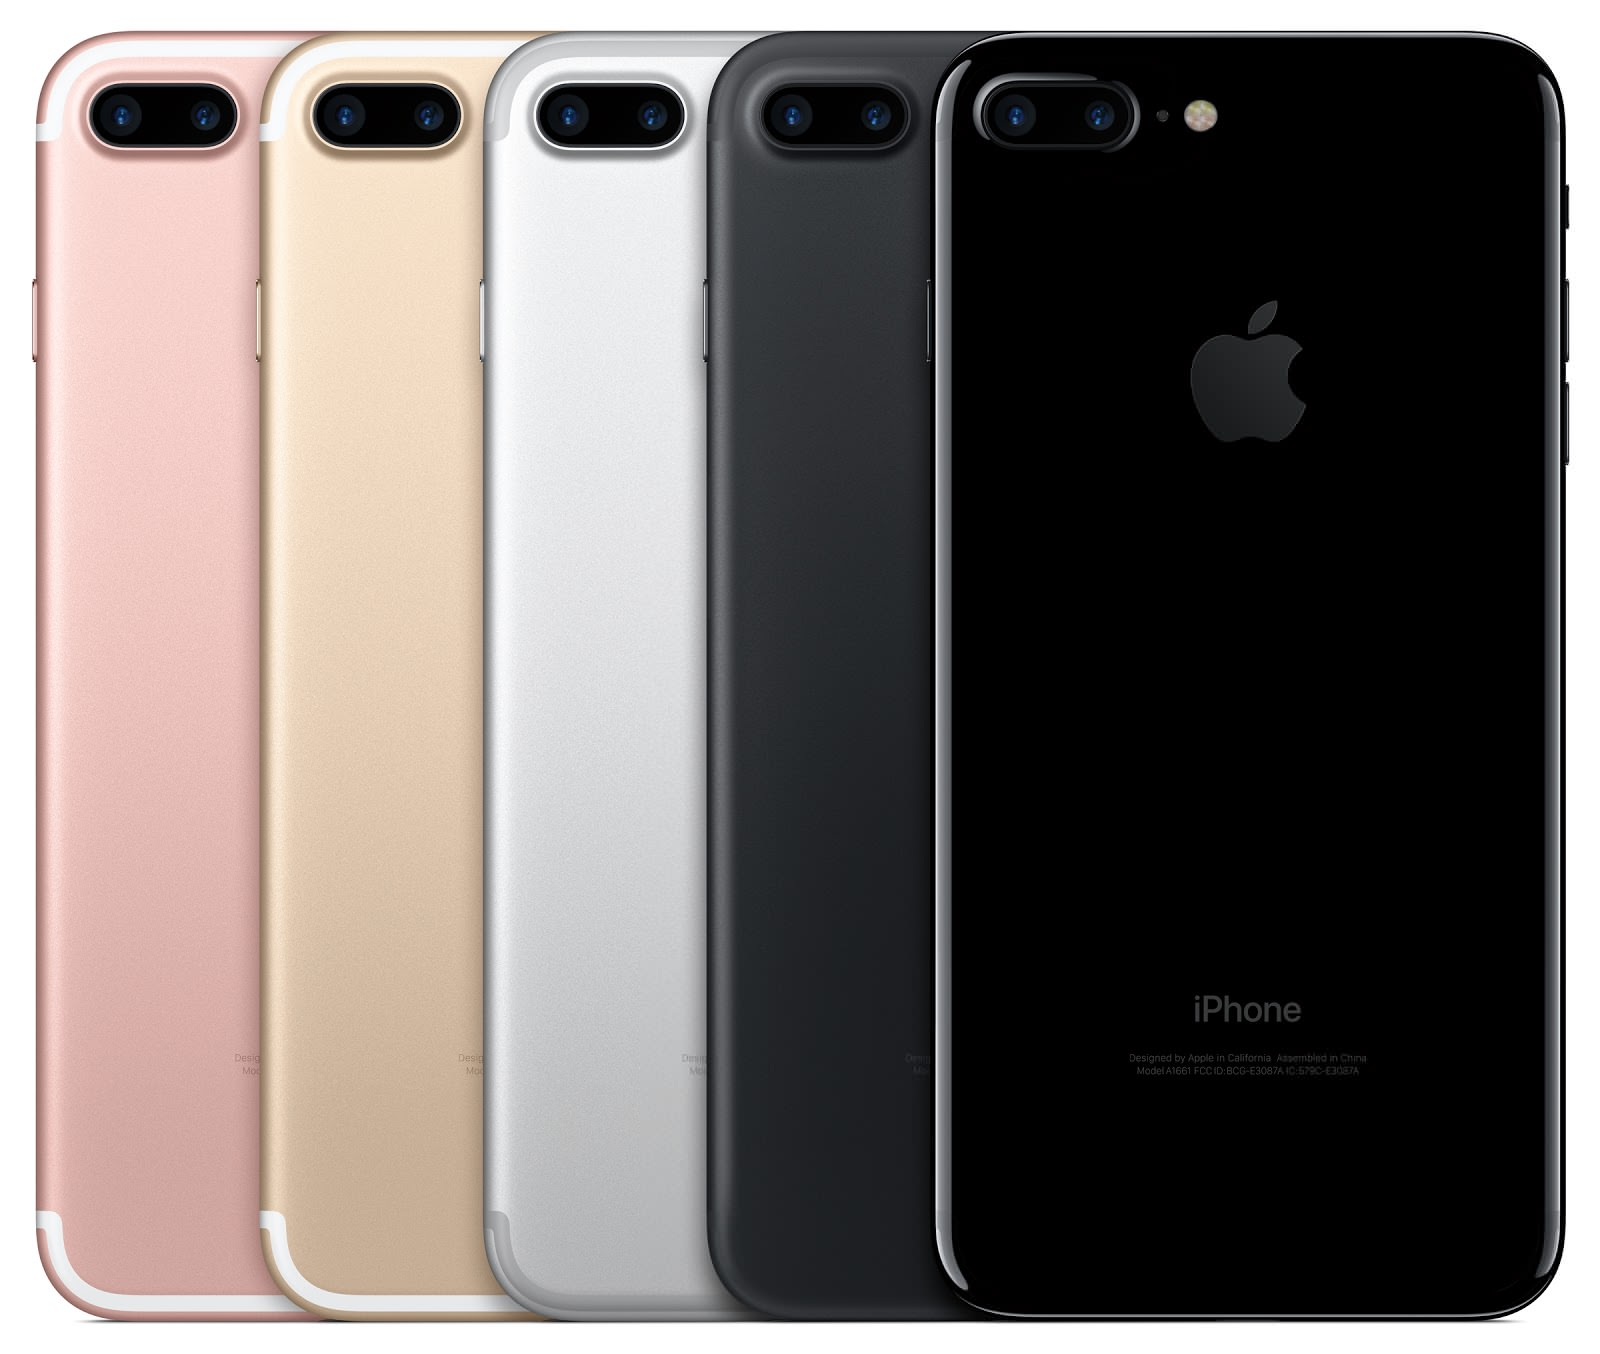 iPhone7Plus Lineup PB PR PRINT image